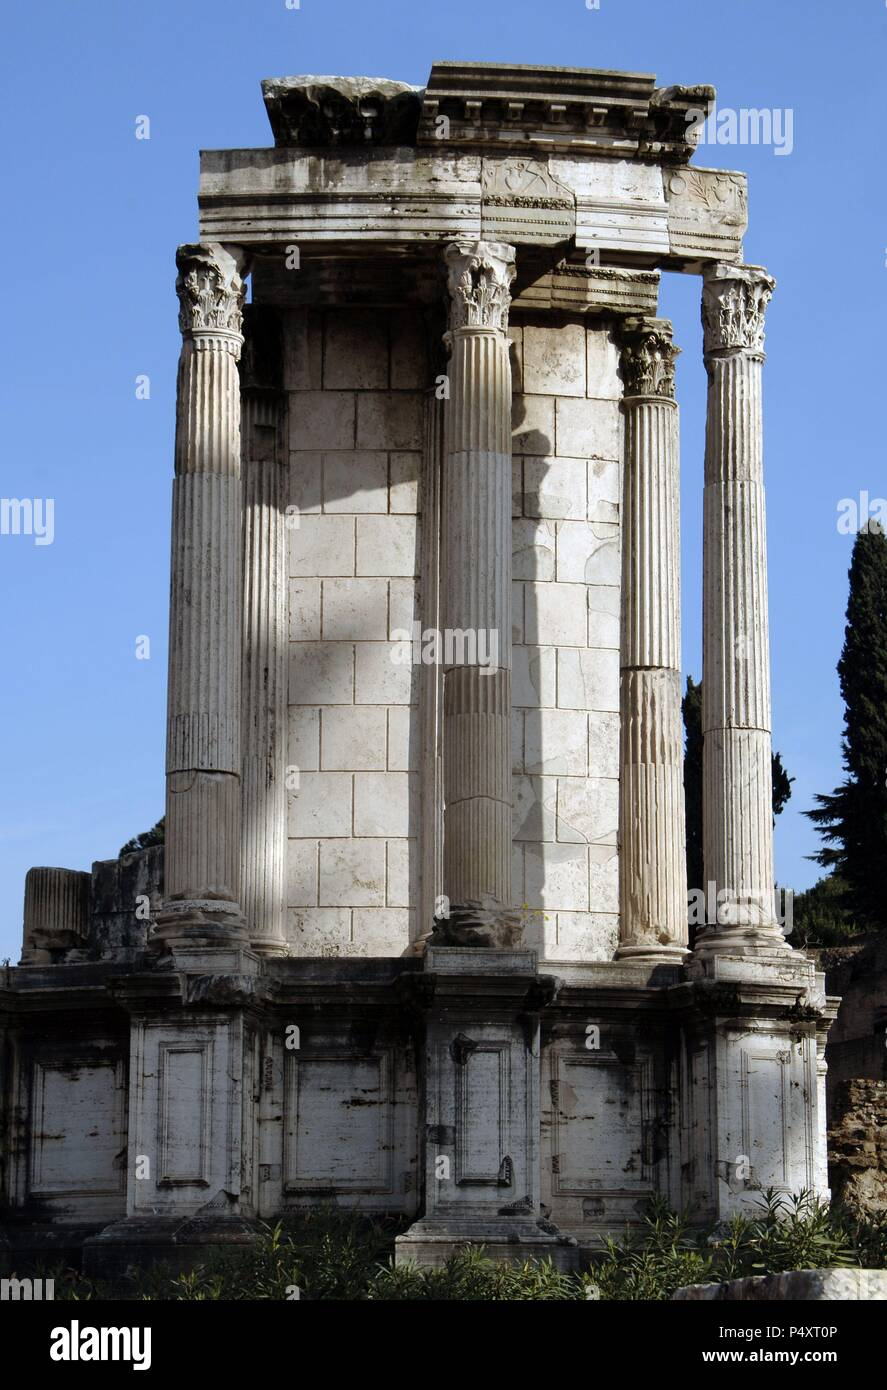 Vesta Temple Alamy amp; Photos Images I Stock qRW6HAq